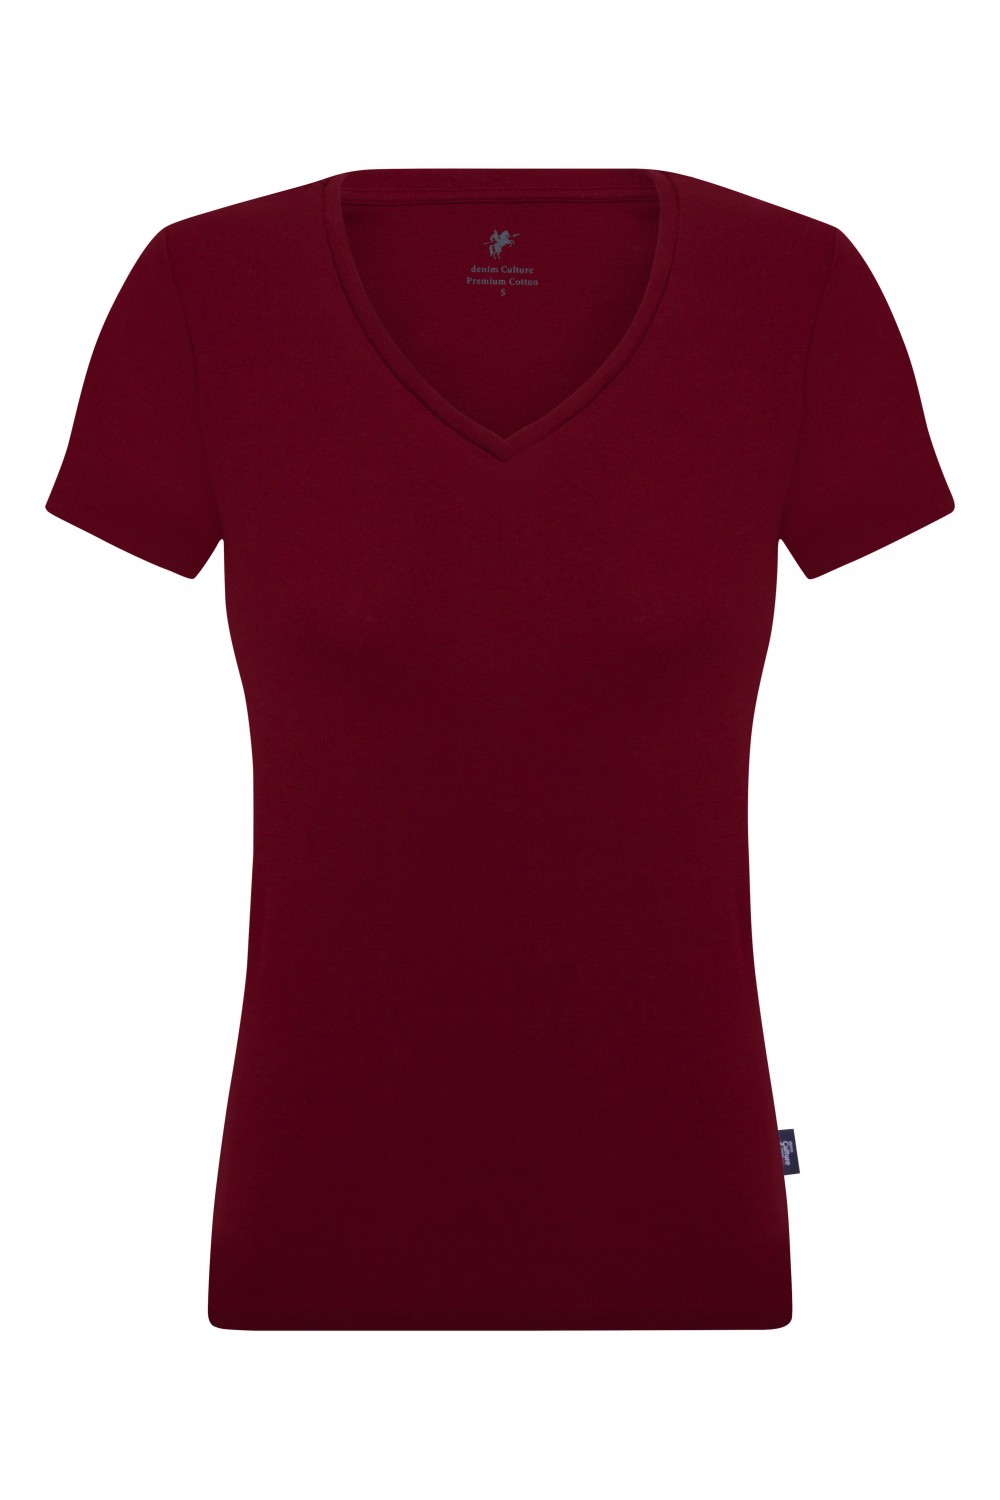 Women's T-Shirt V-neck Bordeaux Cotton